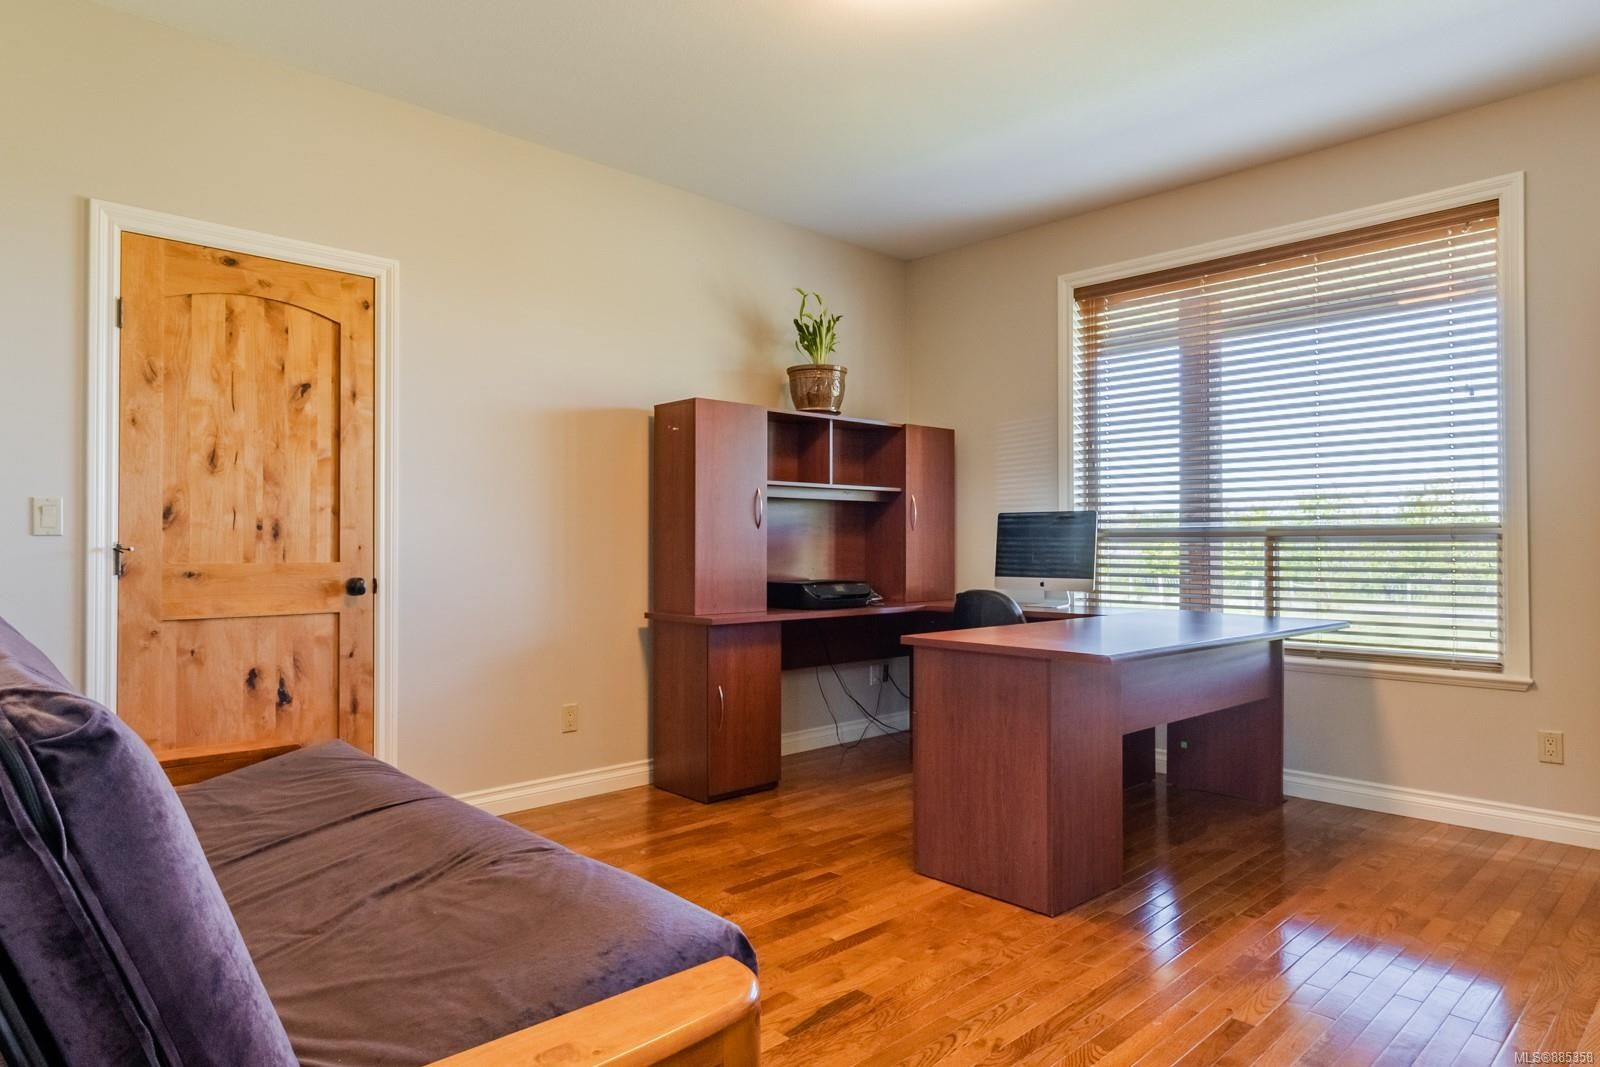 Photo 23: Photos: 2850 Peters Rd in : PQ Qualicum Beach House for sale (Parksville/Qualicum)  : MLS®# 885358